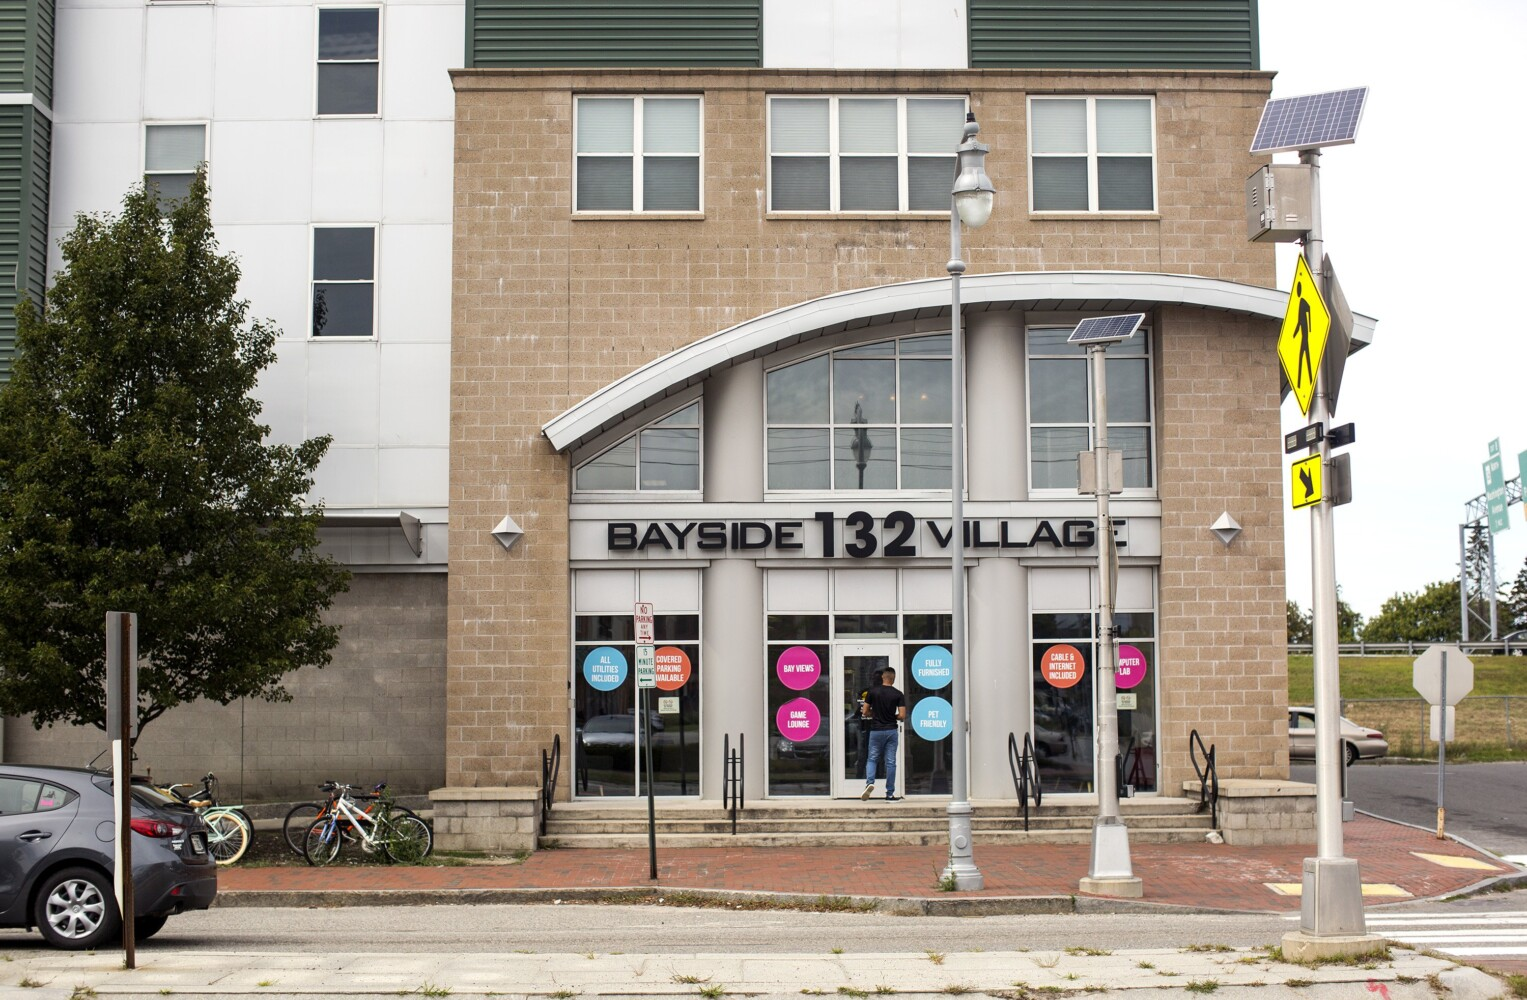 Sale of student lodging house in Bayside triggers backlash - Portland Press Herald